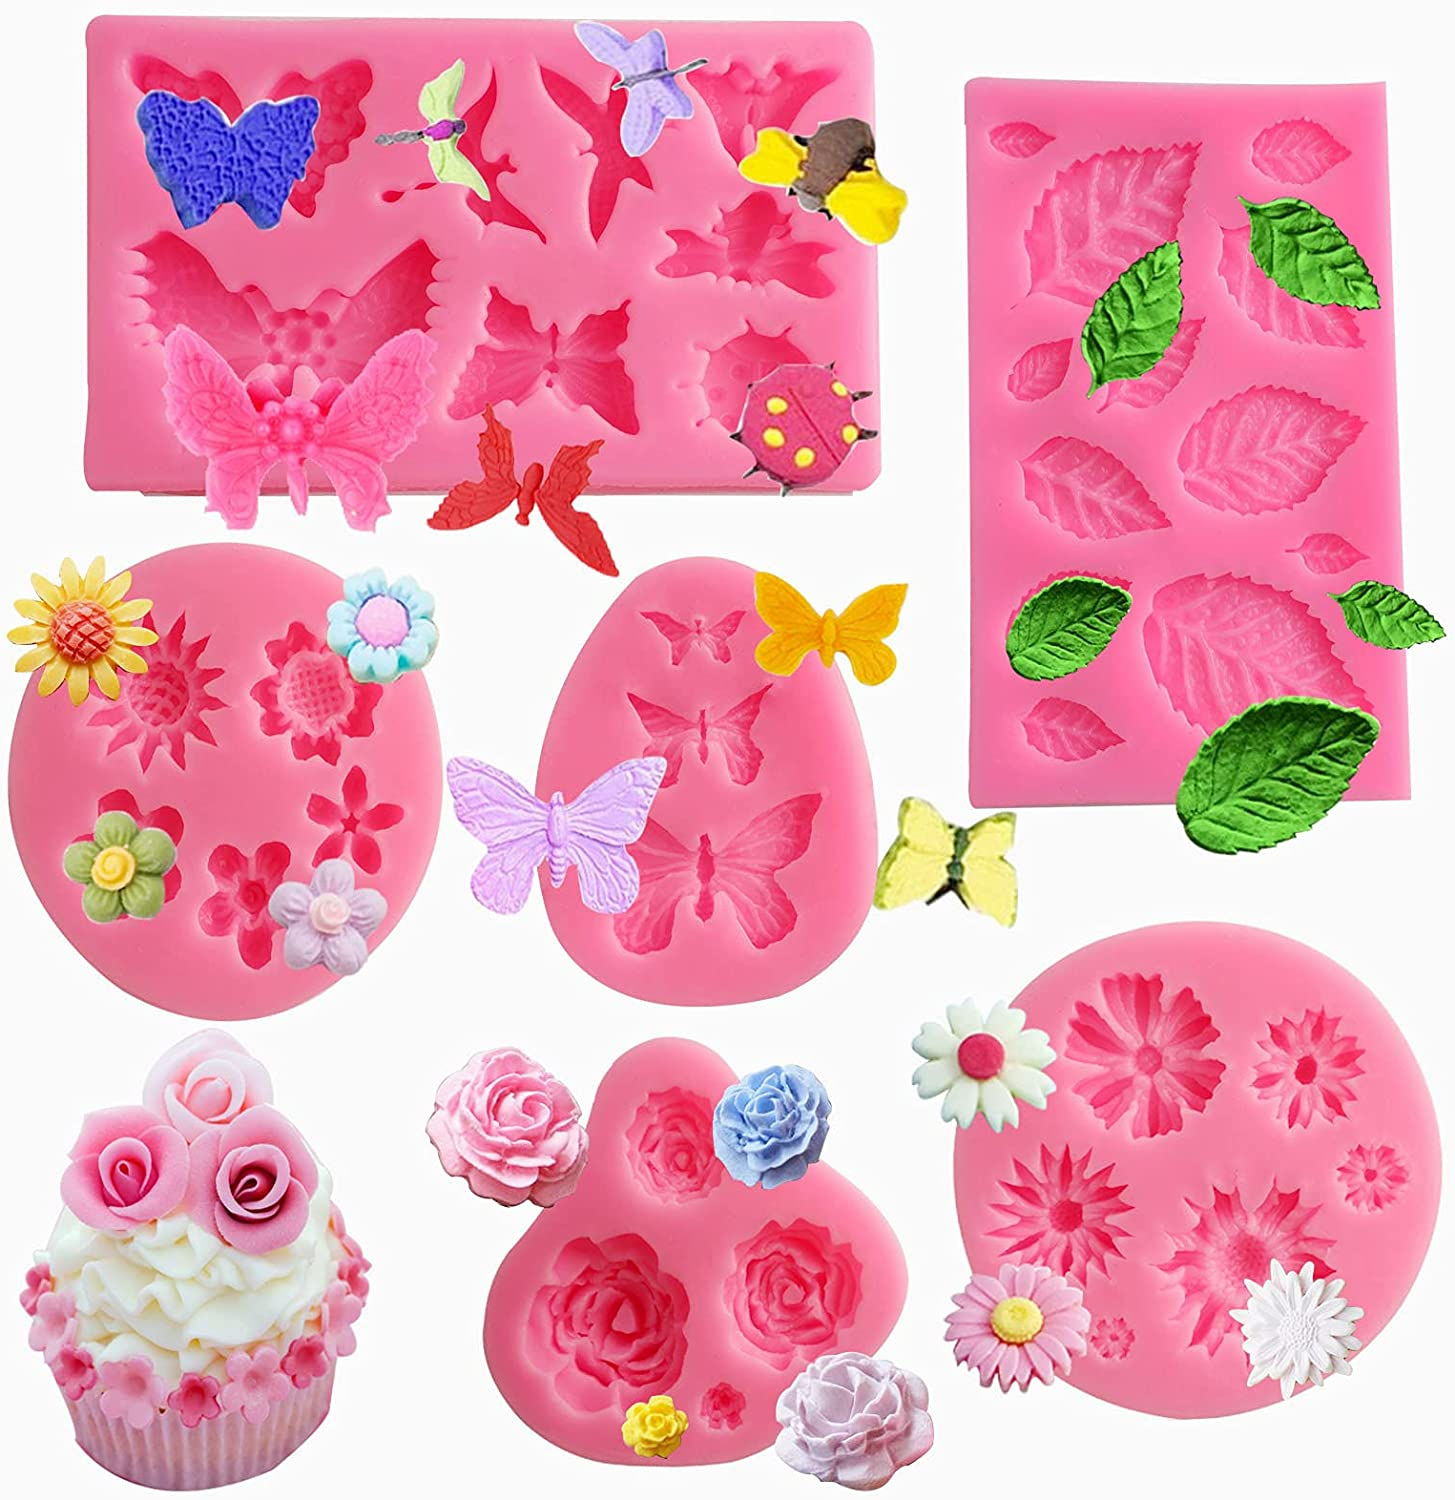 Silicone Mold Flower Silicone Cake Mold,6 Piece,Rose Silicone Mold,Chocolate Mold,Flower Fondant Mold Leaf Mold Silicone for Cupcake, Chocolate,Jelly,Mini Muffins,and Candy Making